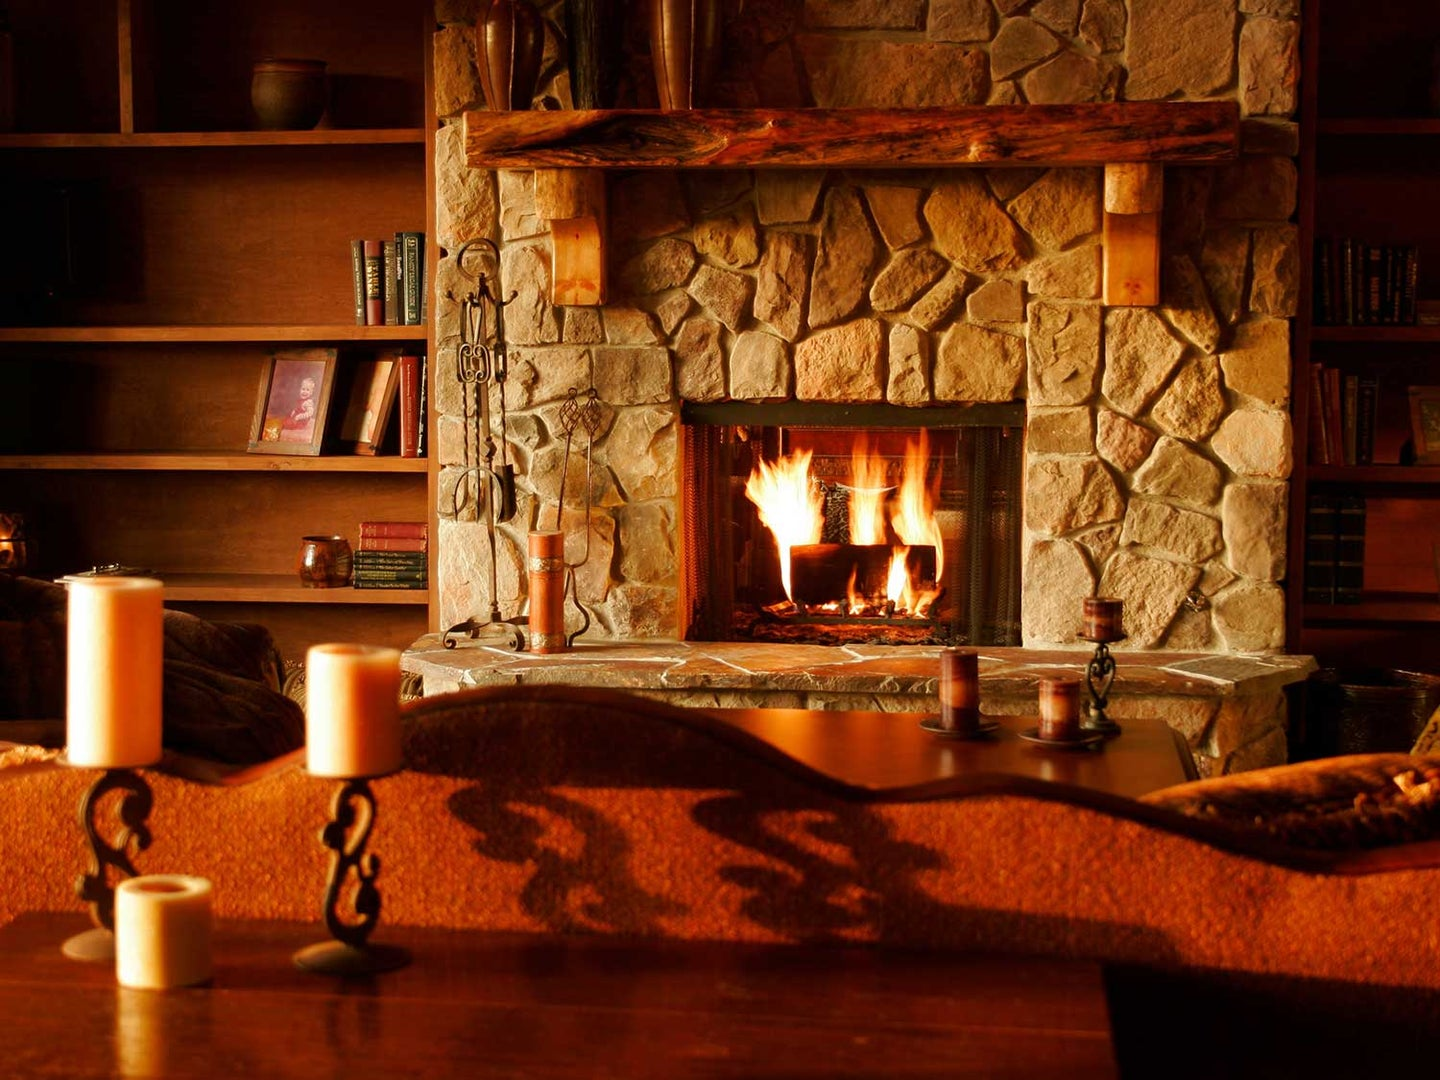 Fireplace with fire burning.